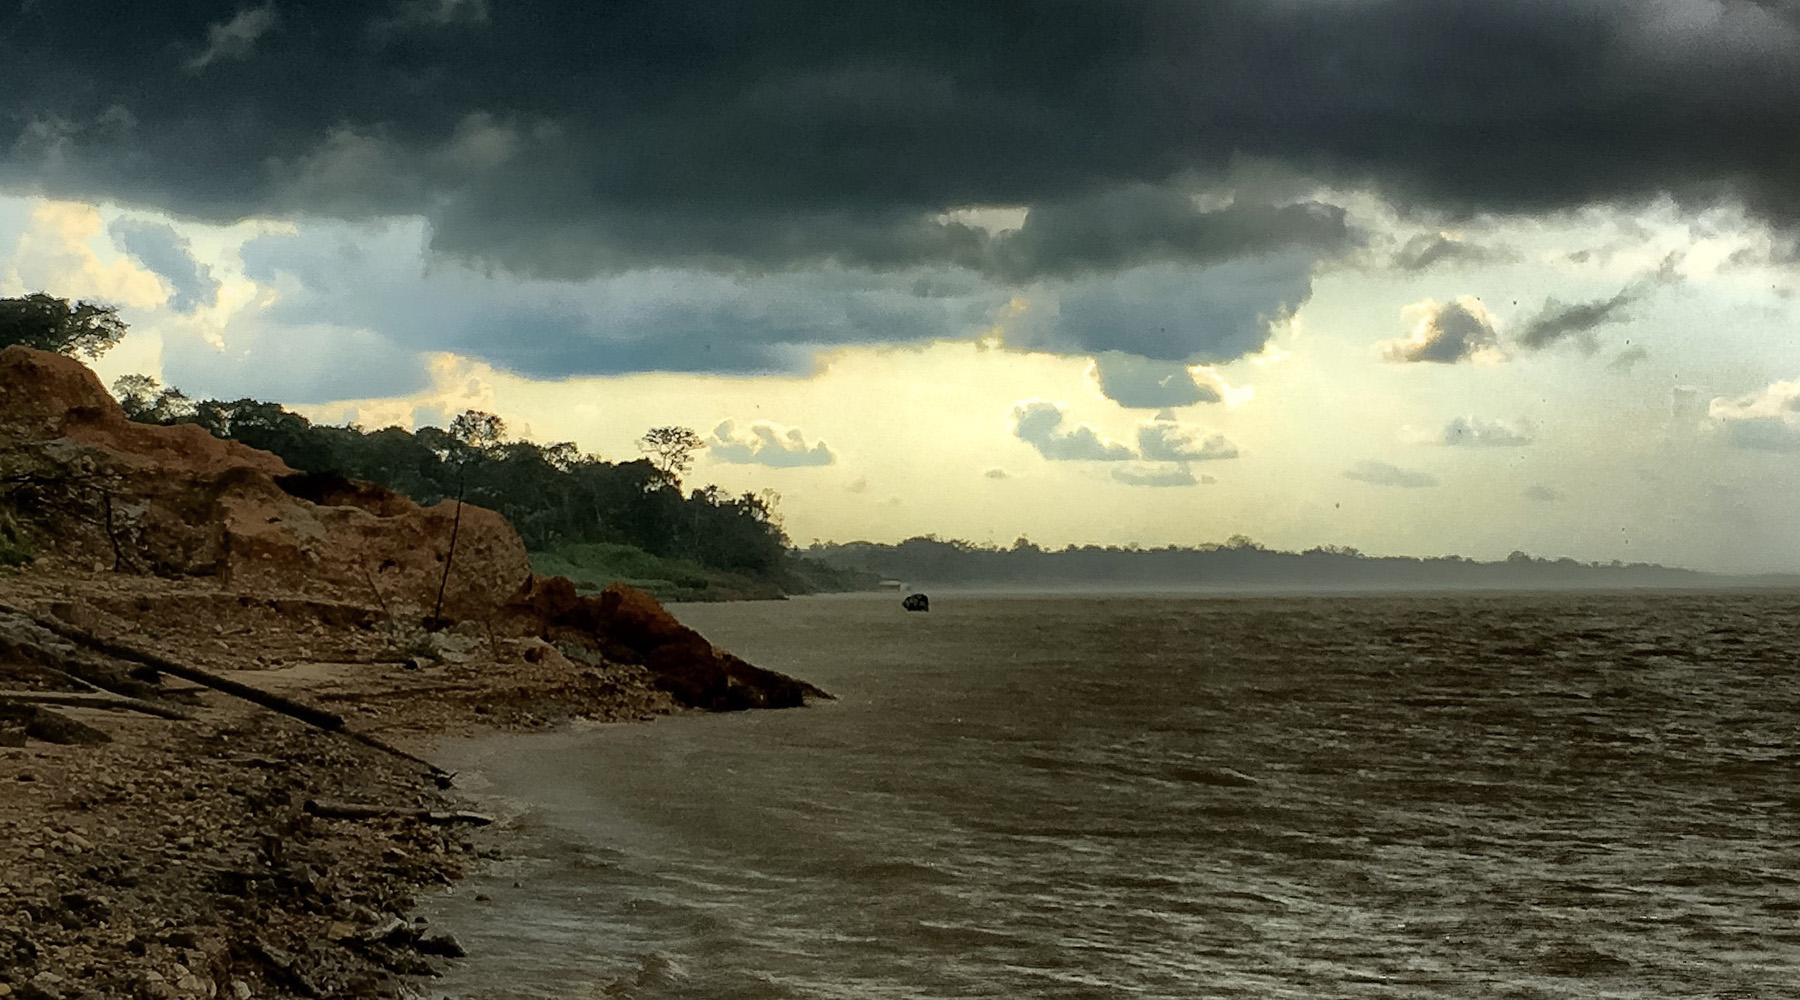 An afternoon storm passes over the riverbanks we were examining, halting field work for a while. Photo by Jim Best